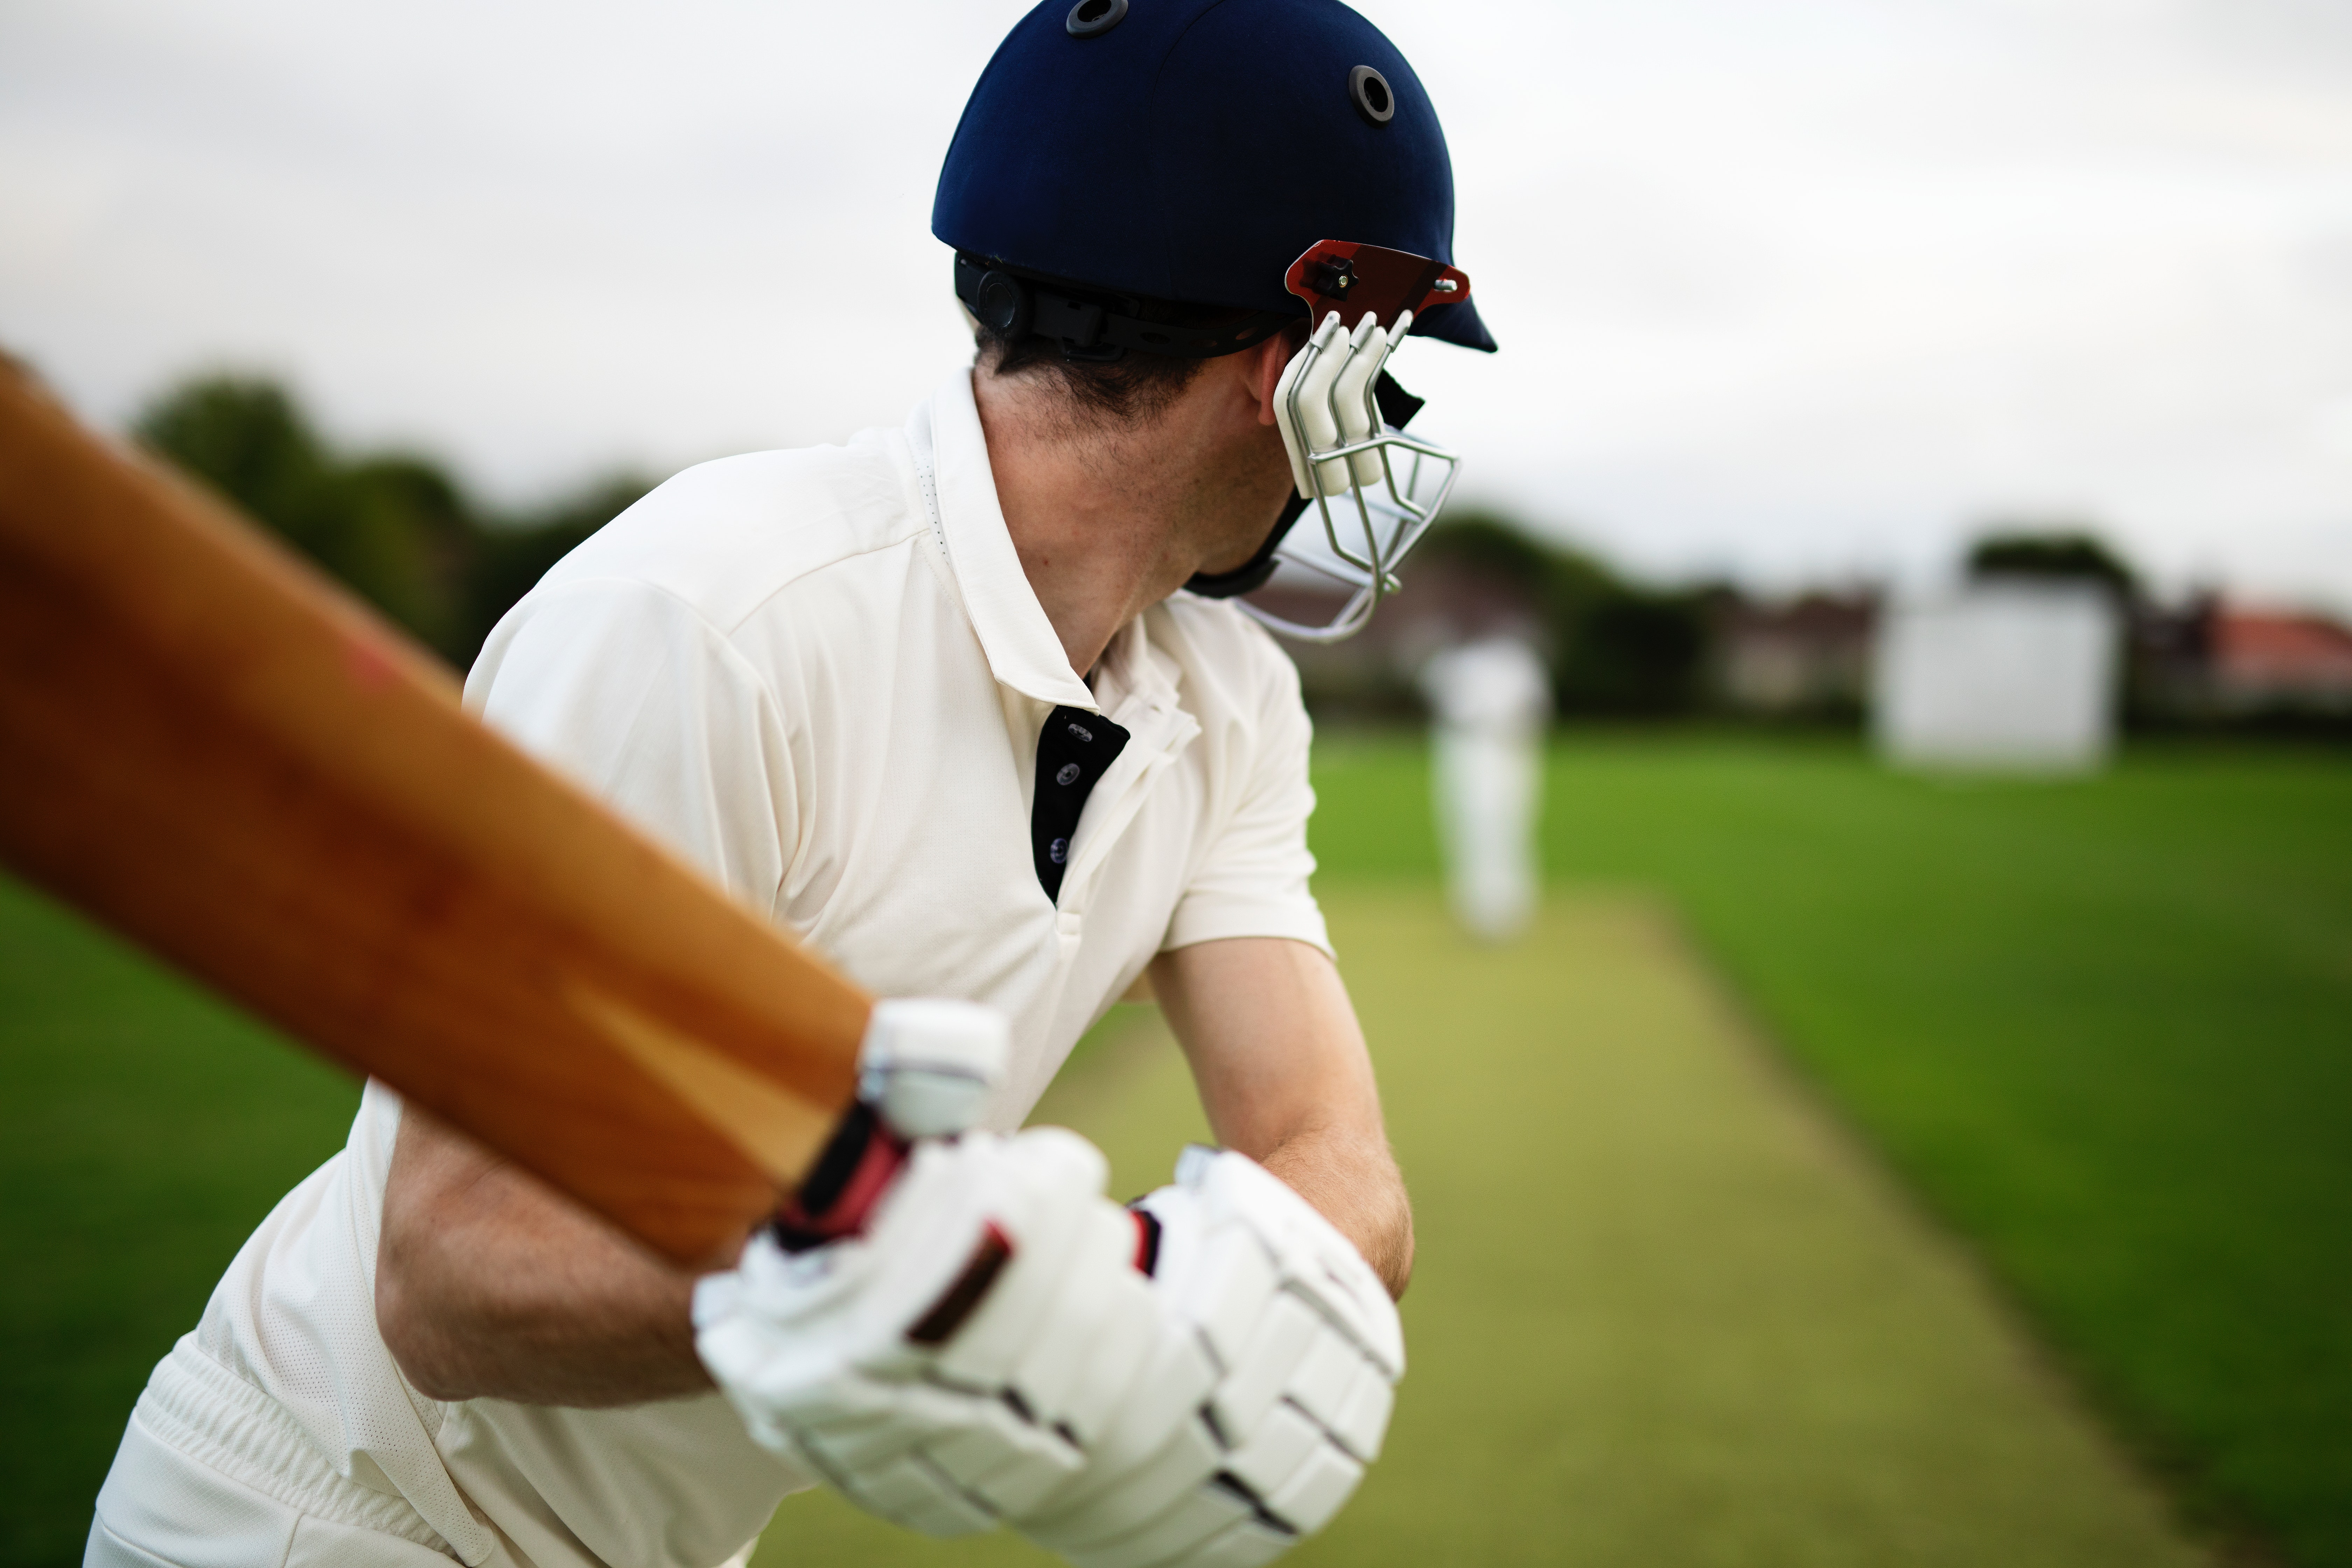 Scapular Stability Importance for Cricketer